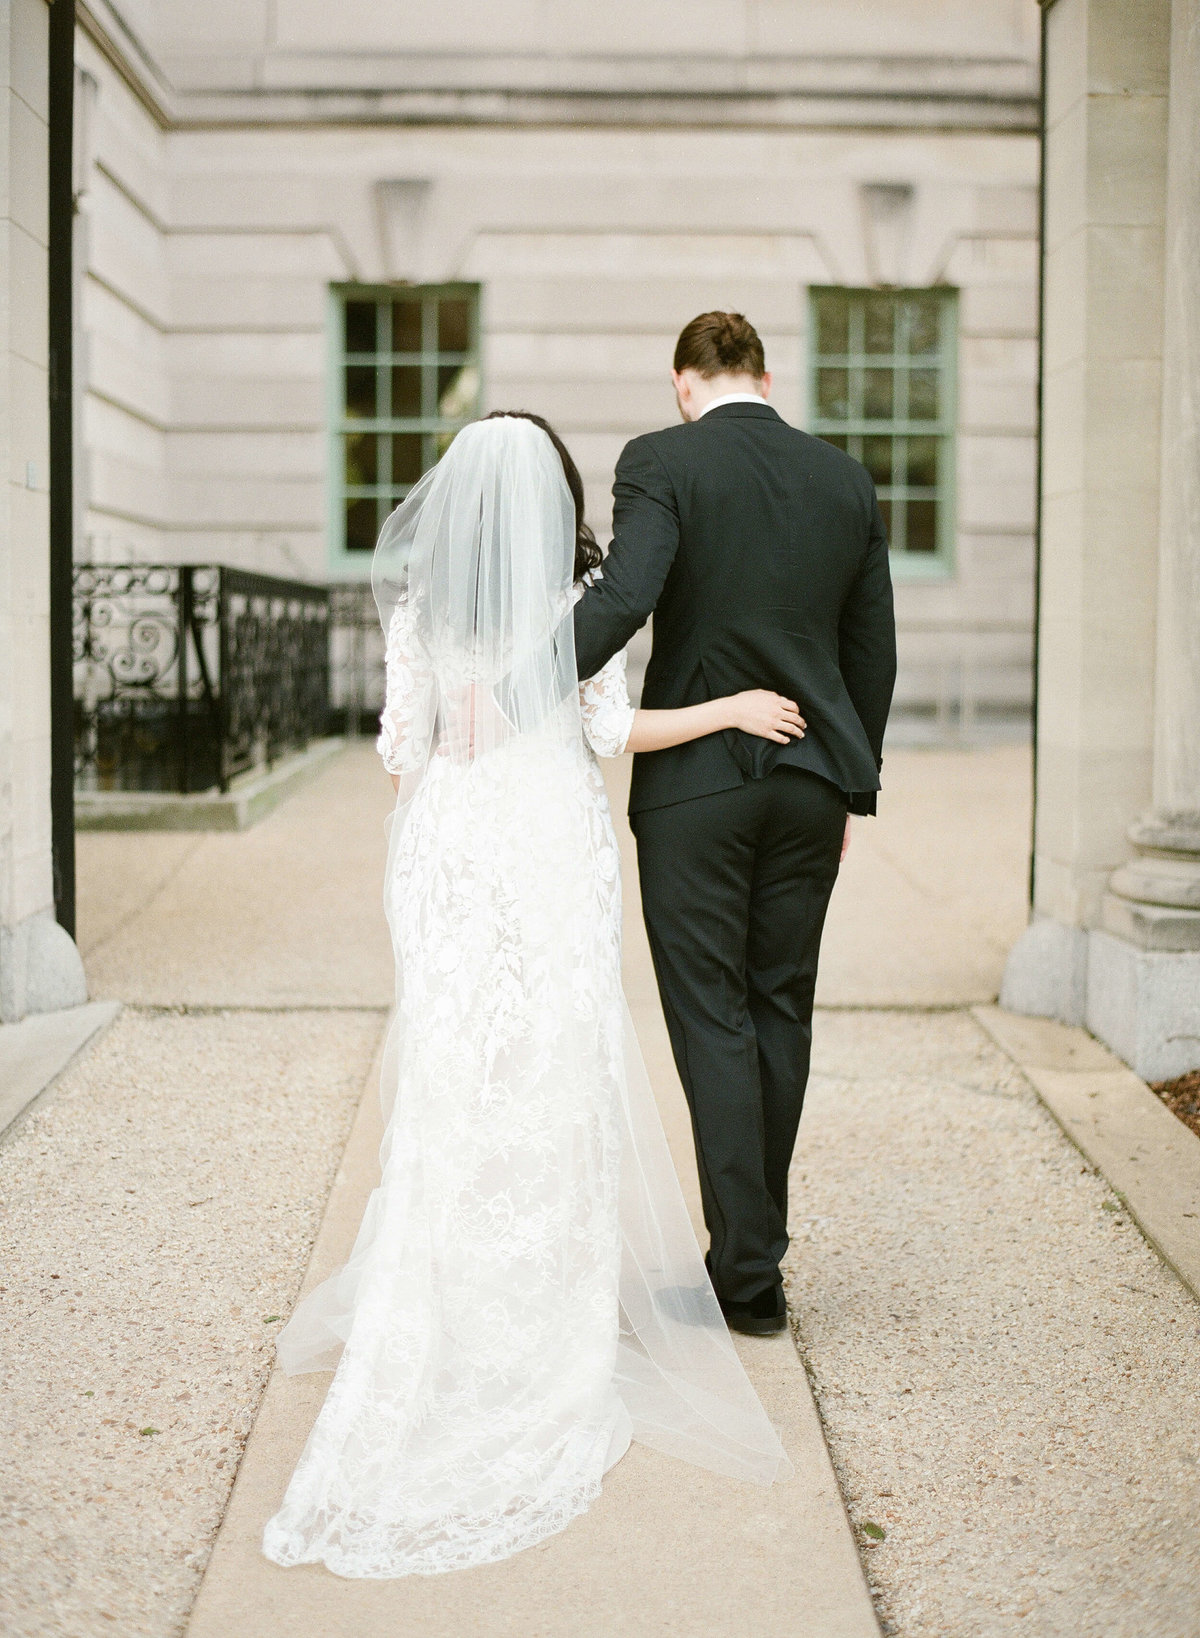 17-KTMerry-weddings-brideandgroom-WashingtonDC